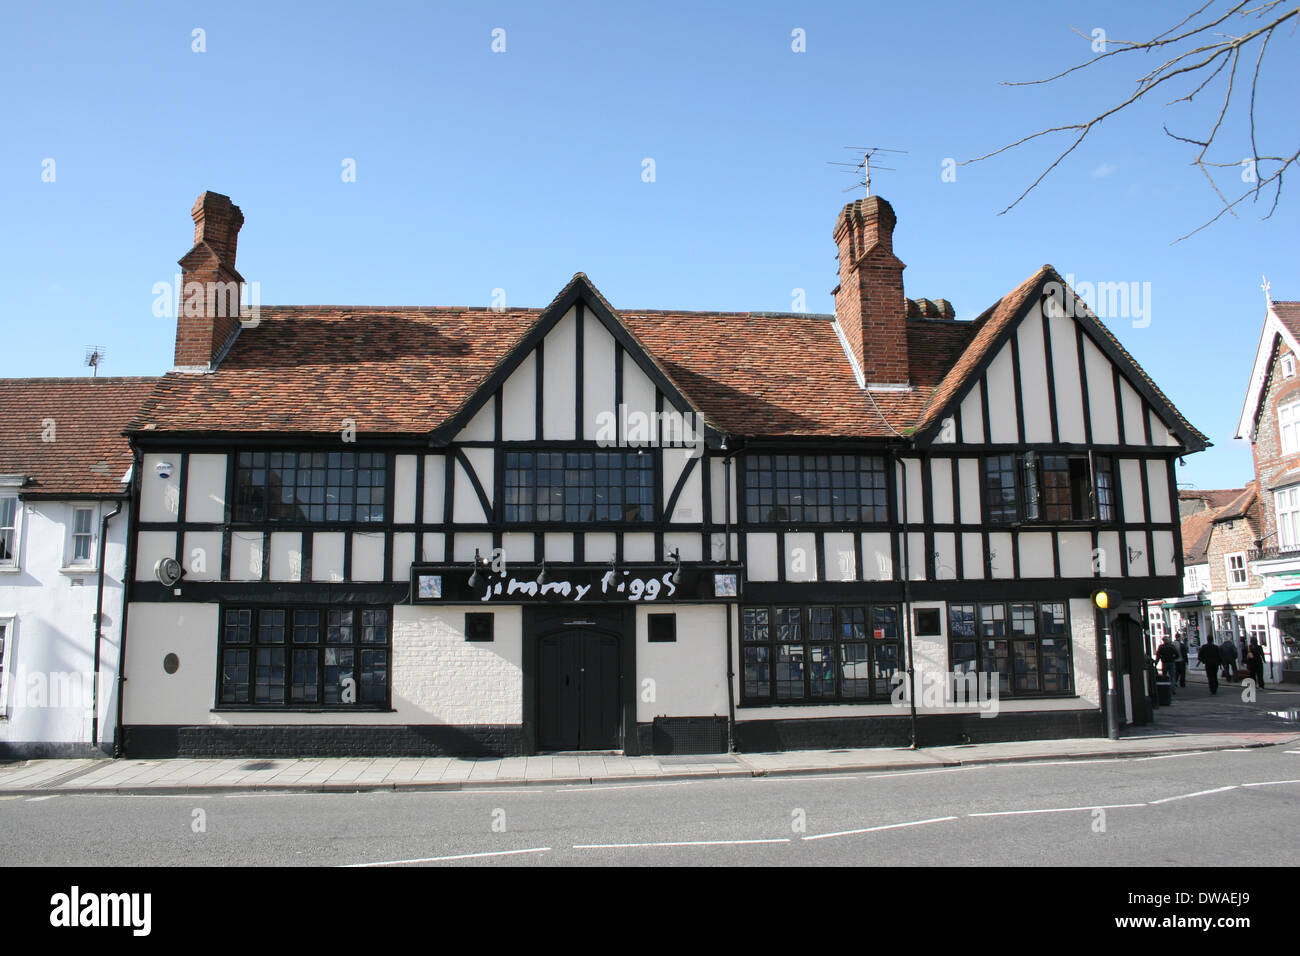 Jimmy Figgs Public House in Thame Oxfordshire. - Stock Image